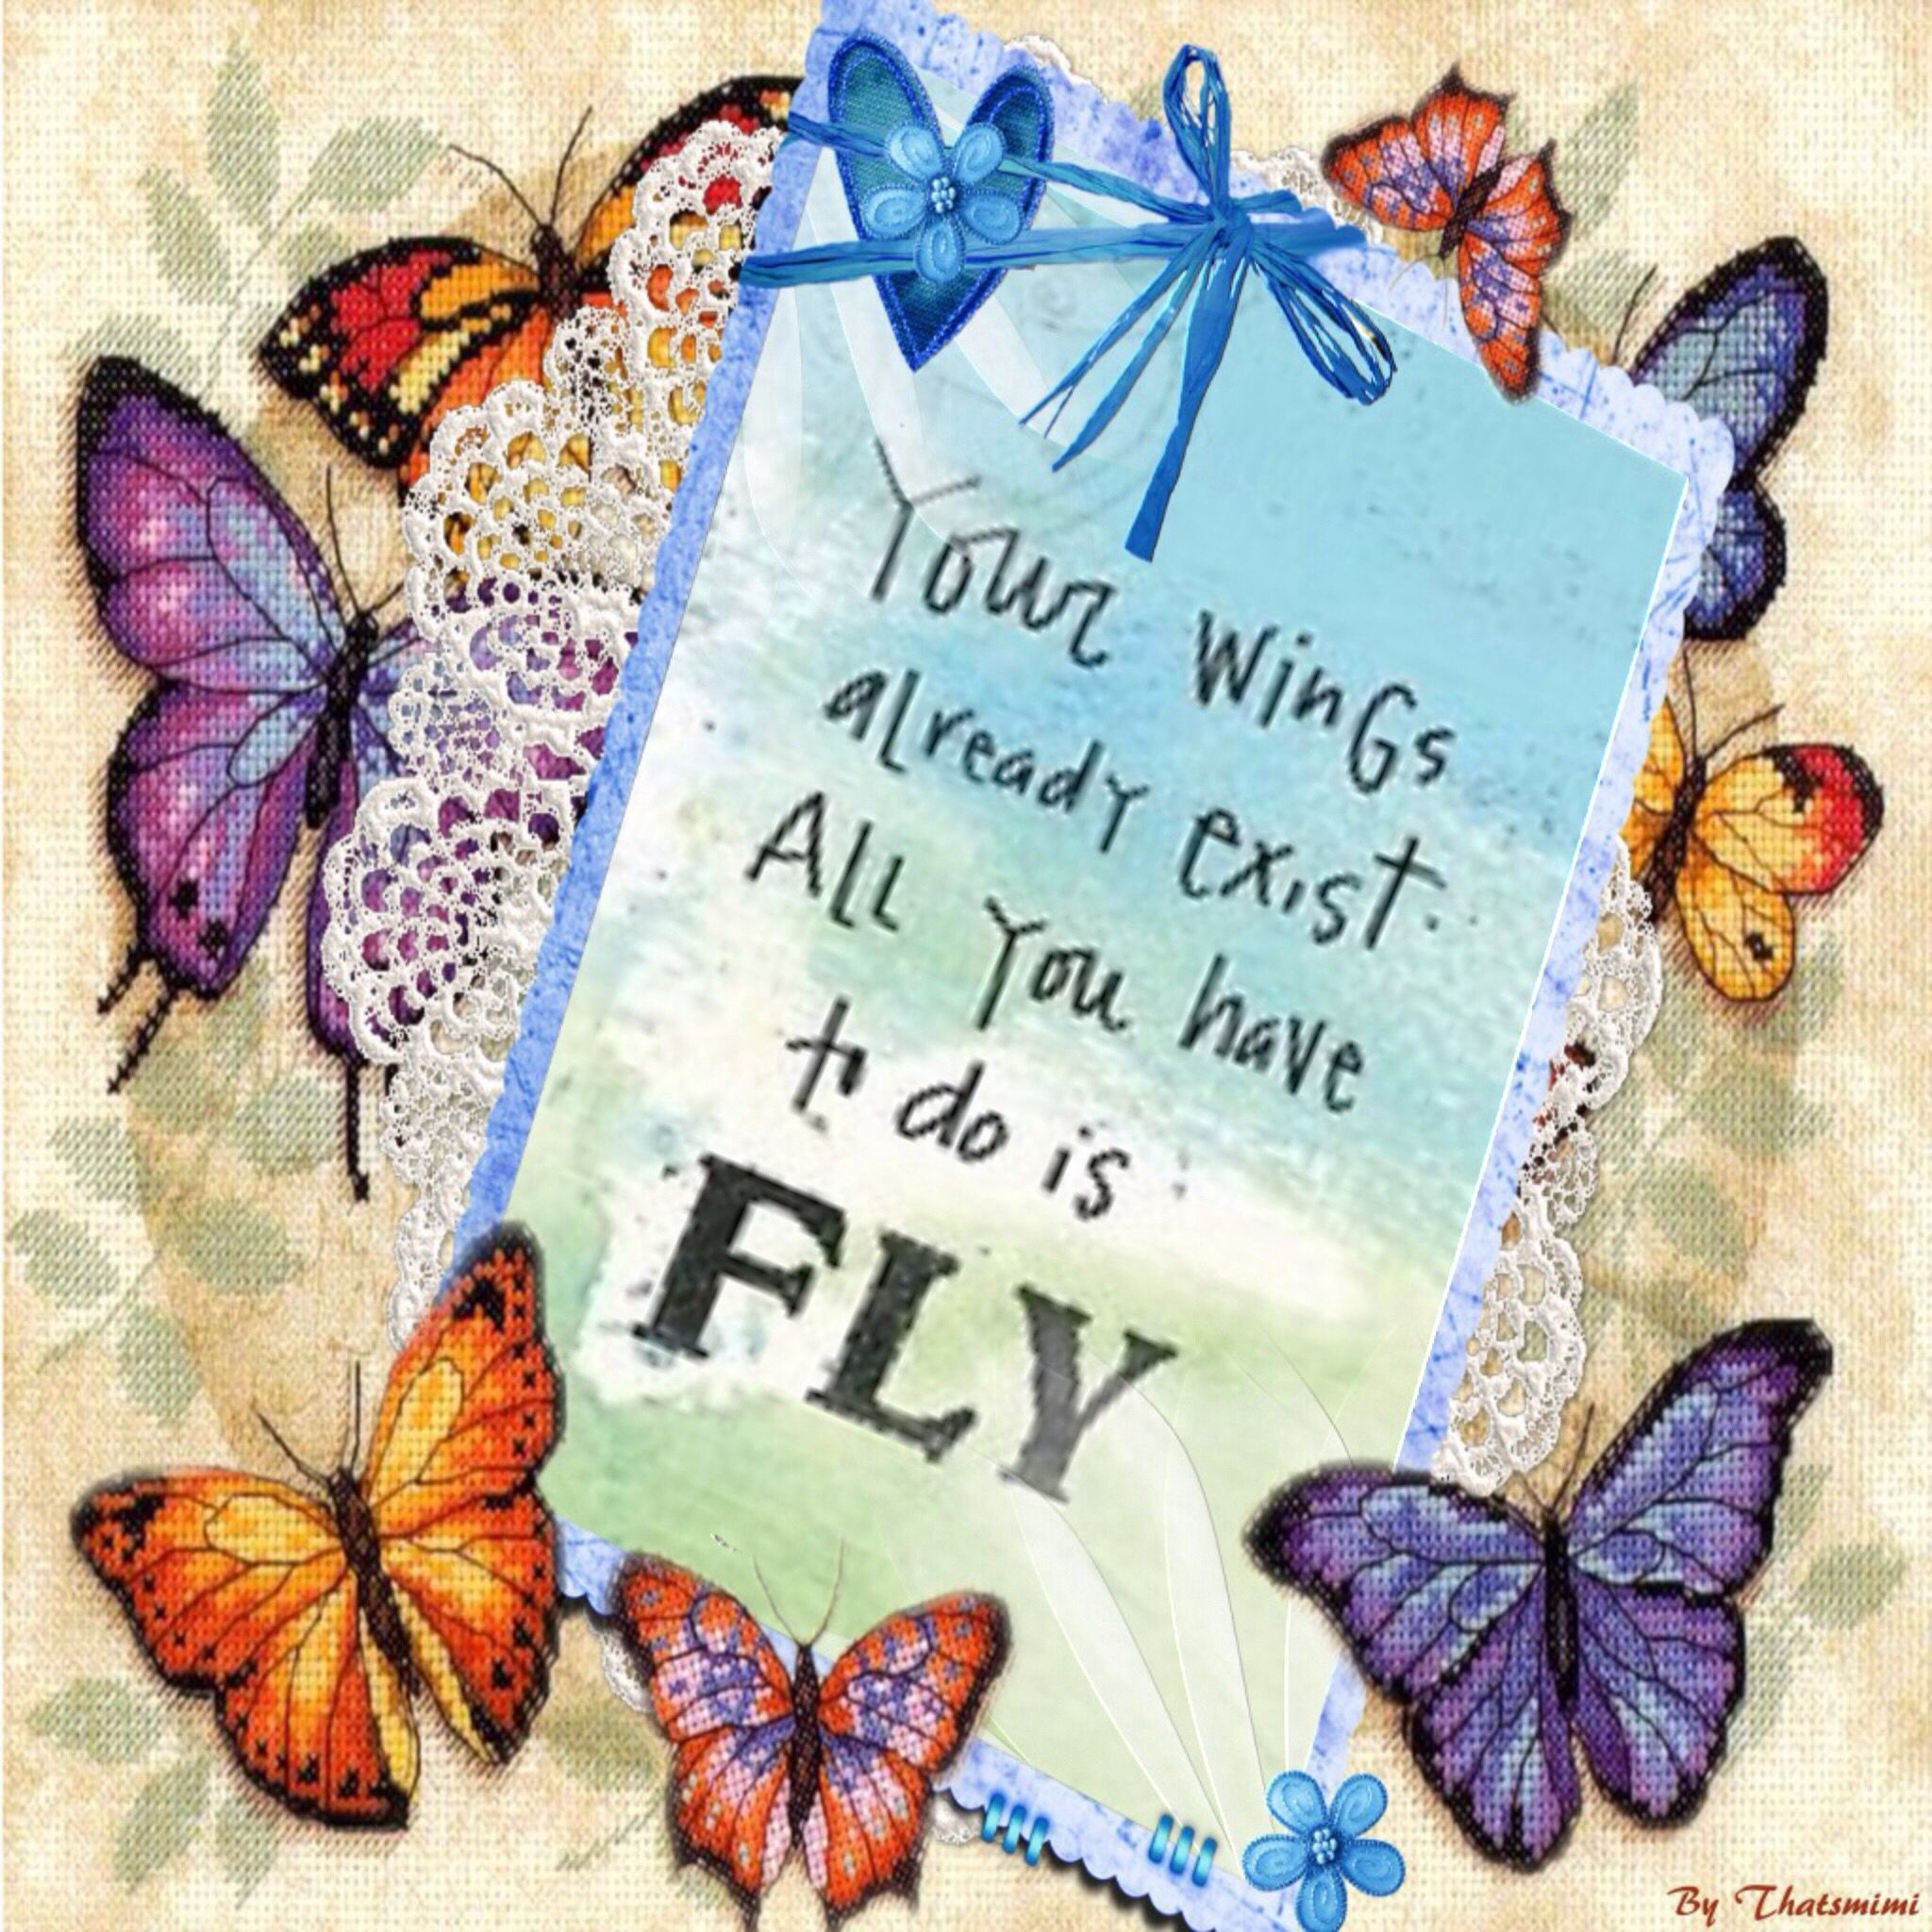 Butterfly Quotes Amusing Butterfly Blessings  Butterfly~  Pinterest  Blessings Butterfly